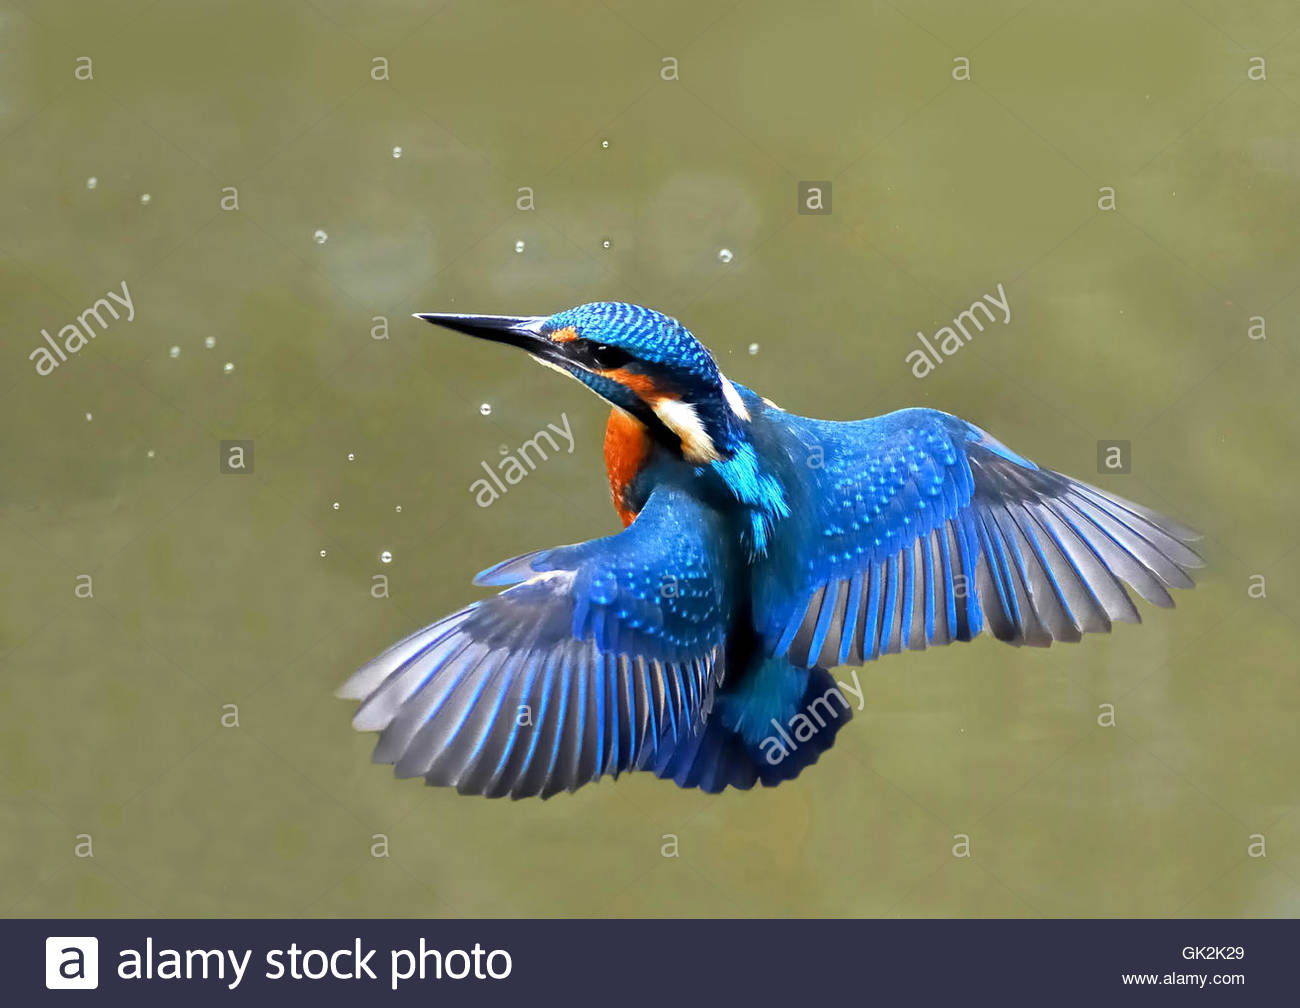 kingfisher in flight - Stock Image